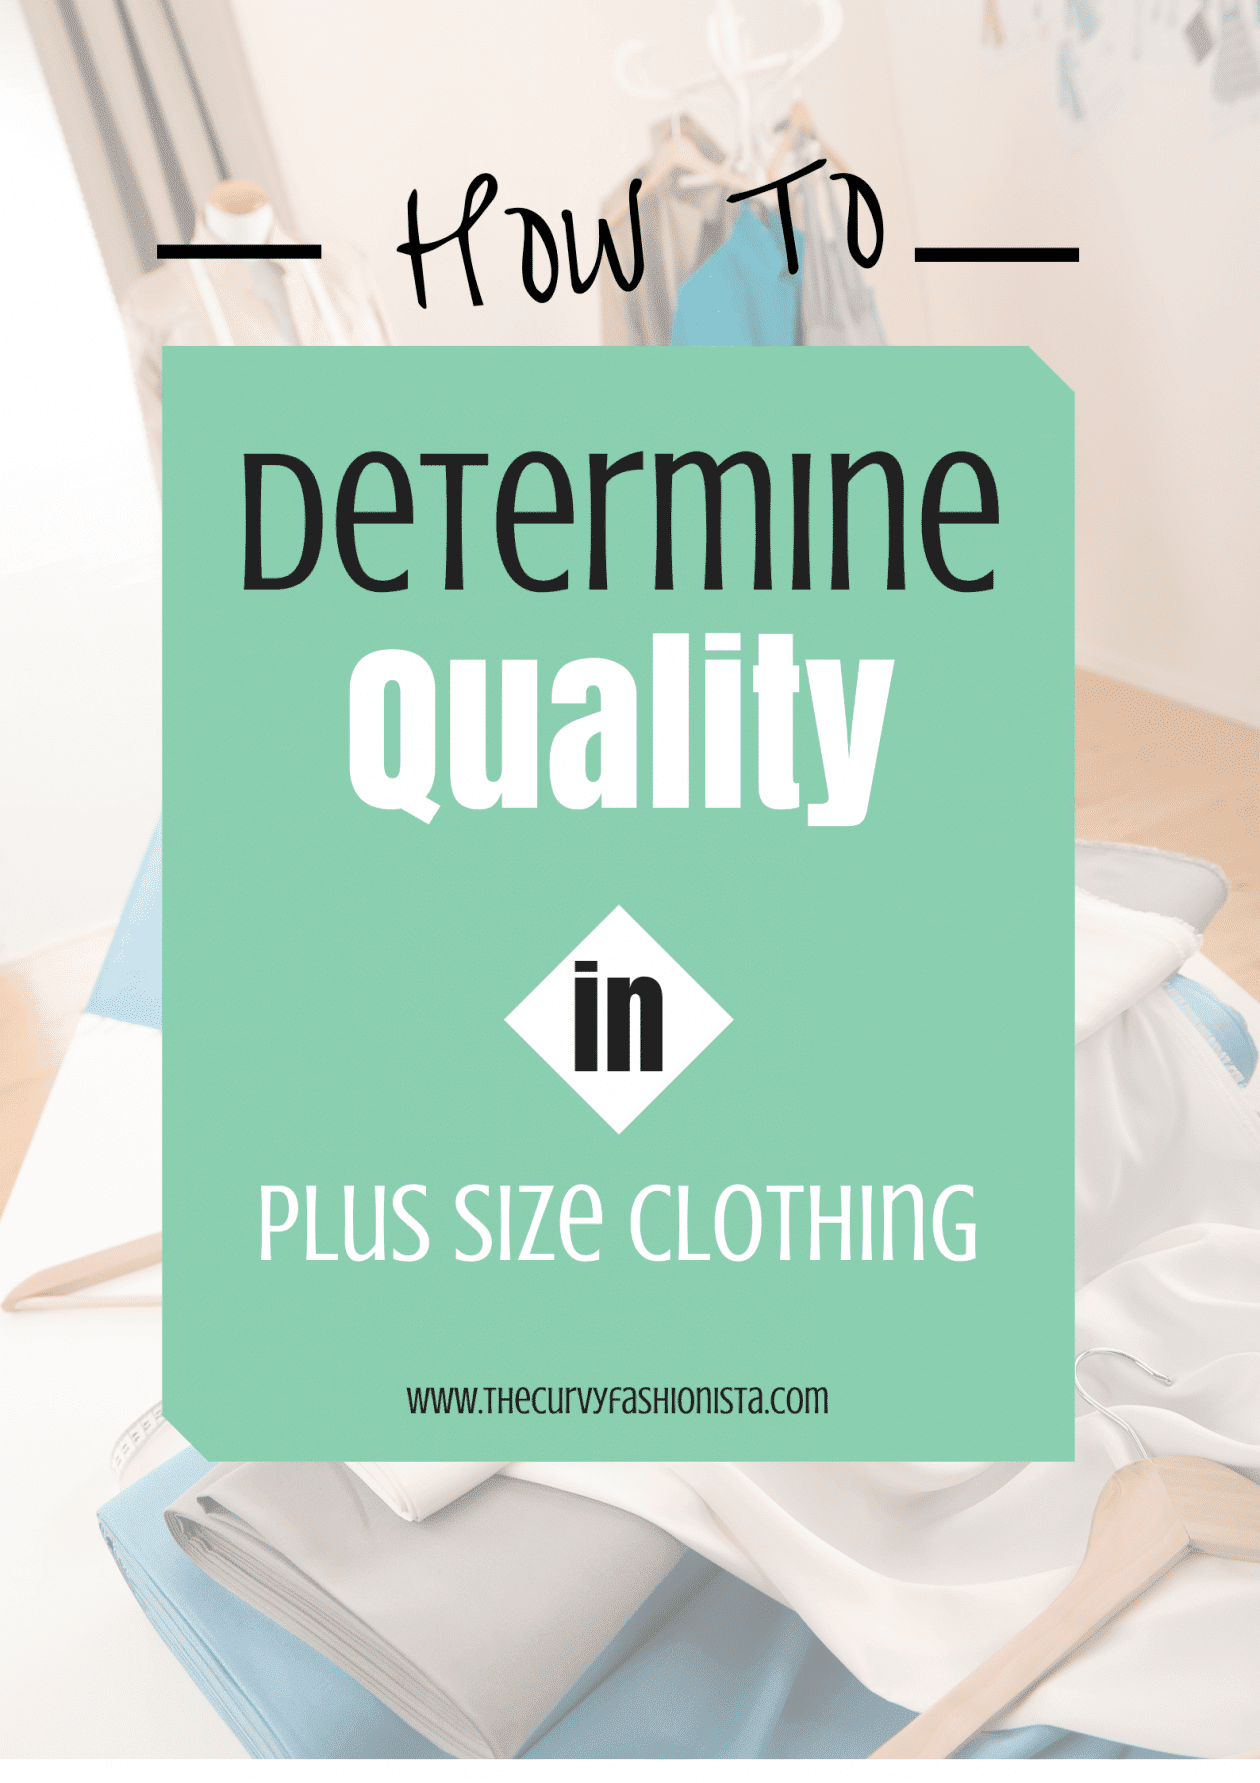 How to determine Quality in Plus Size Clothing